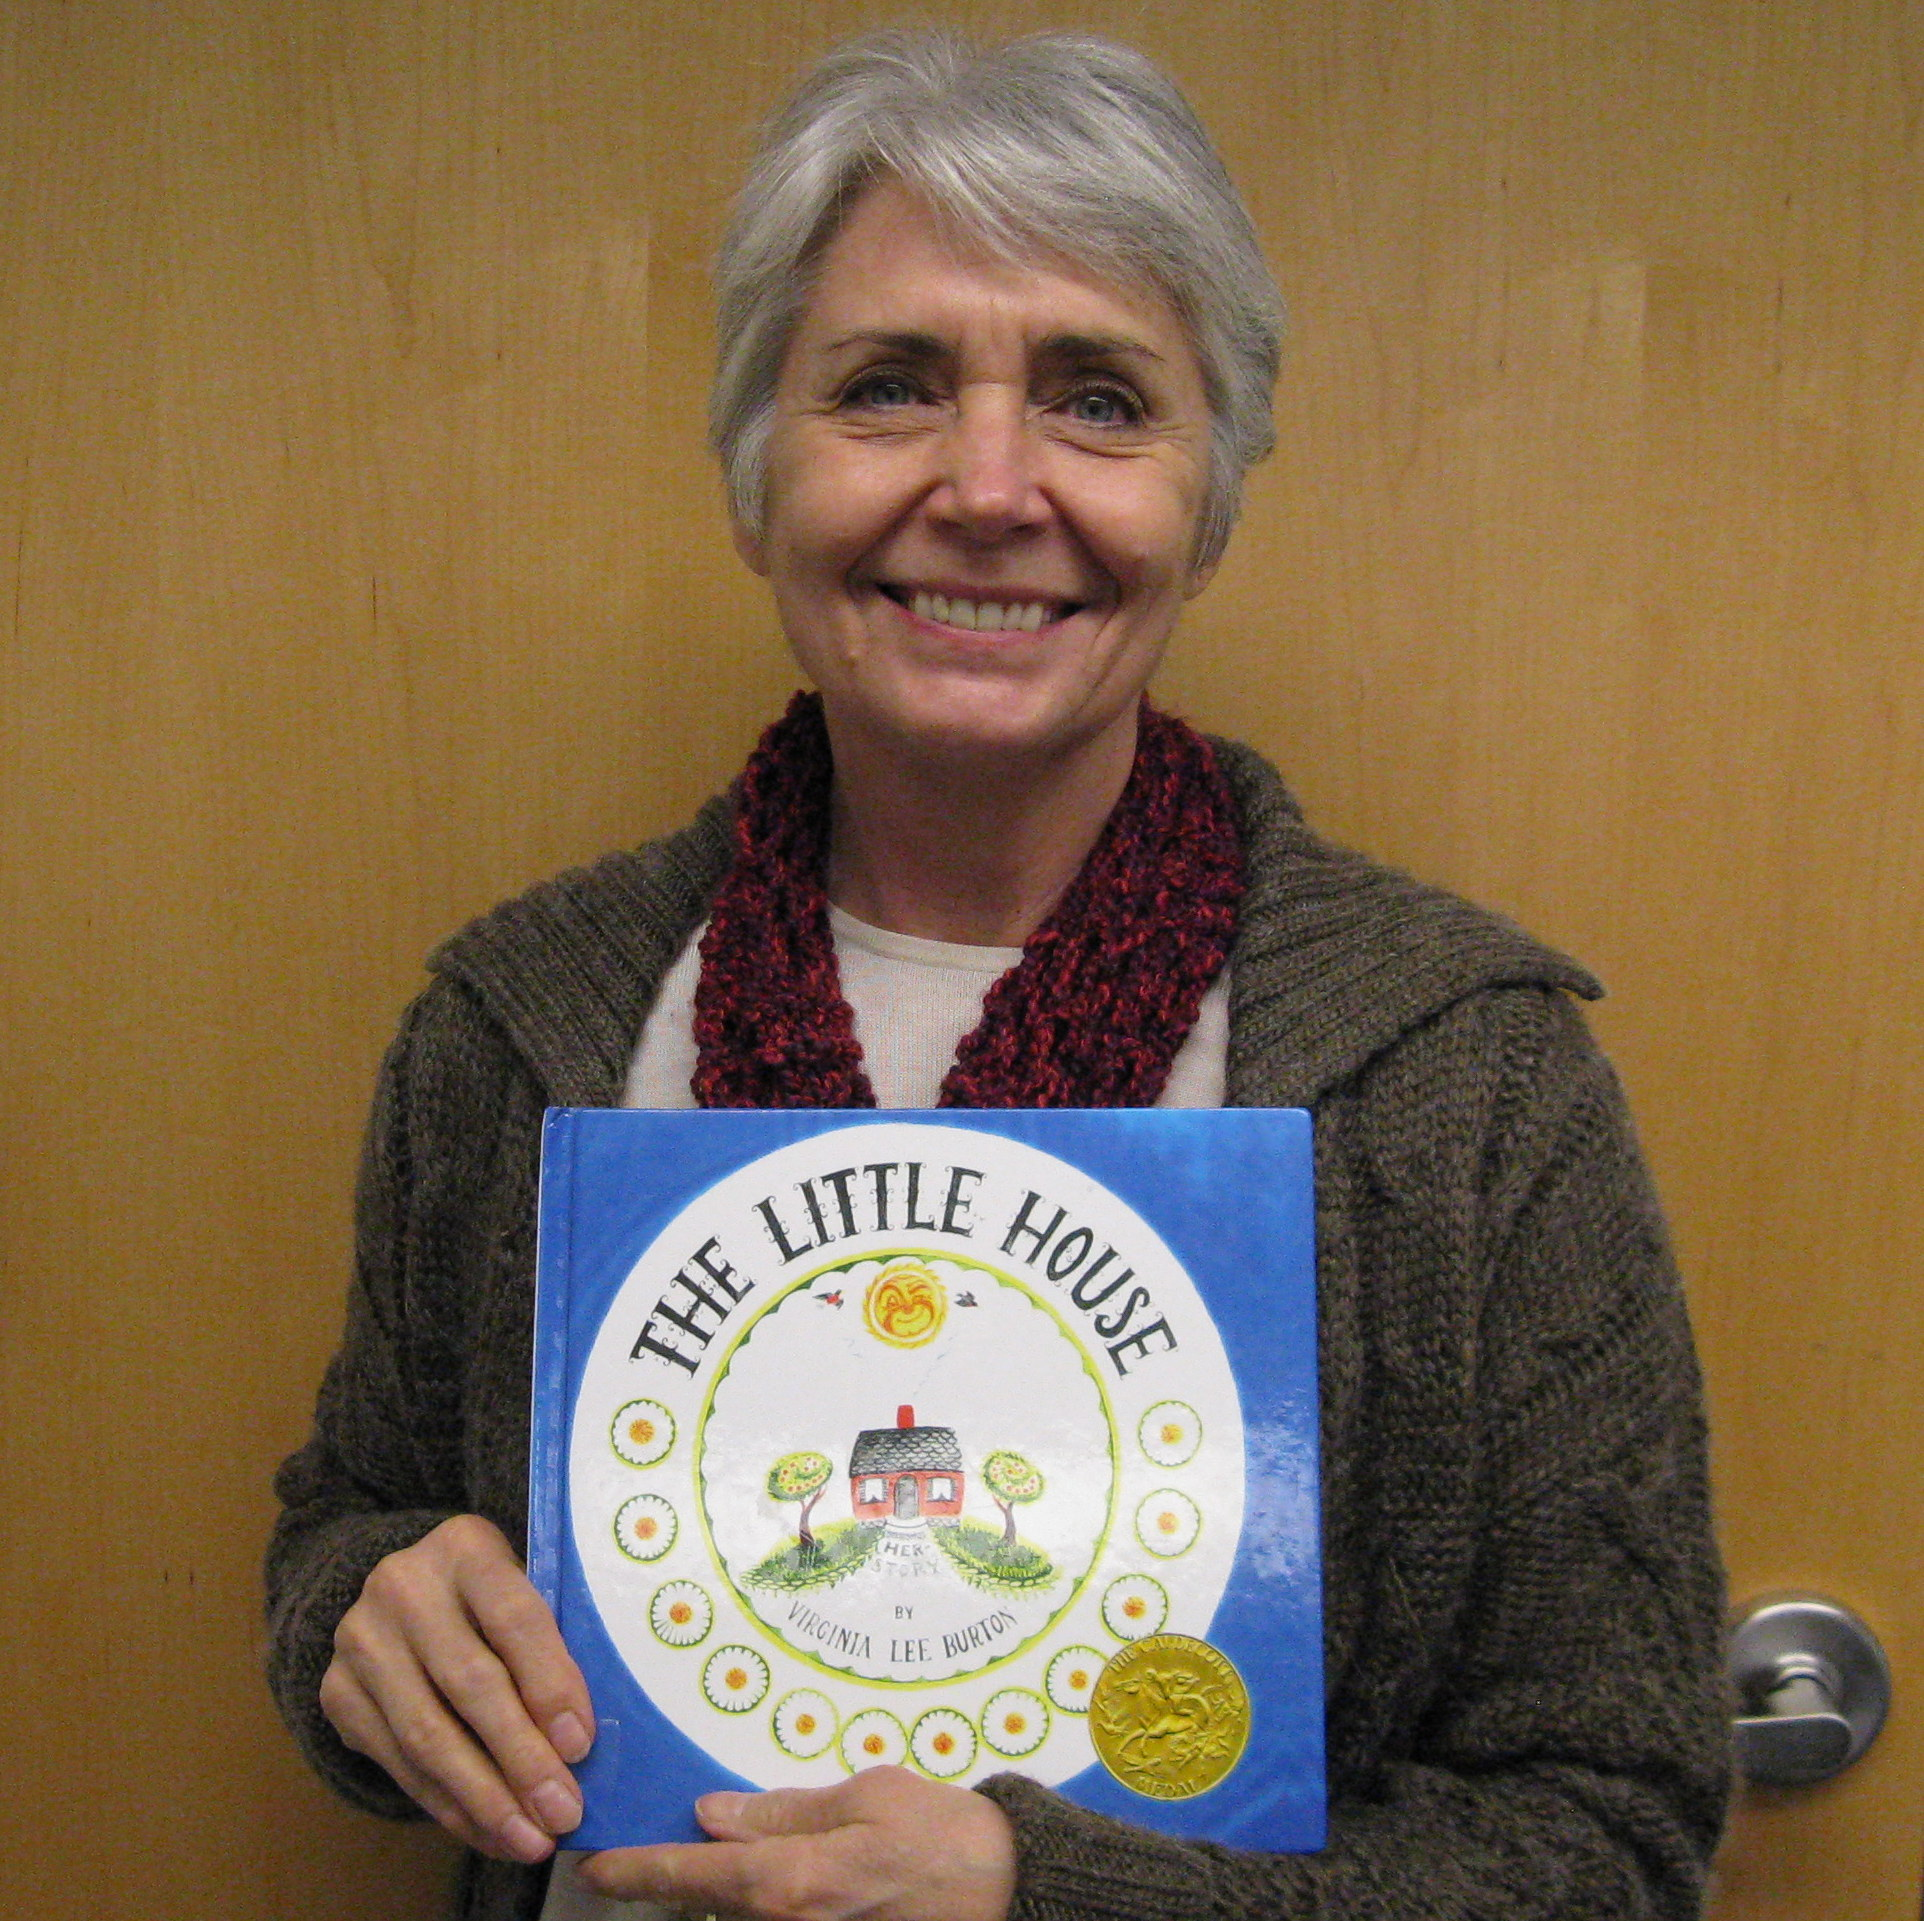 Photo of Alina holding the book The Little House